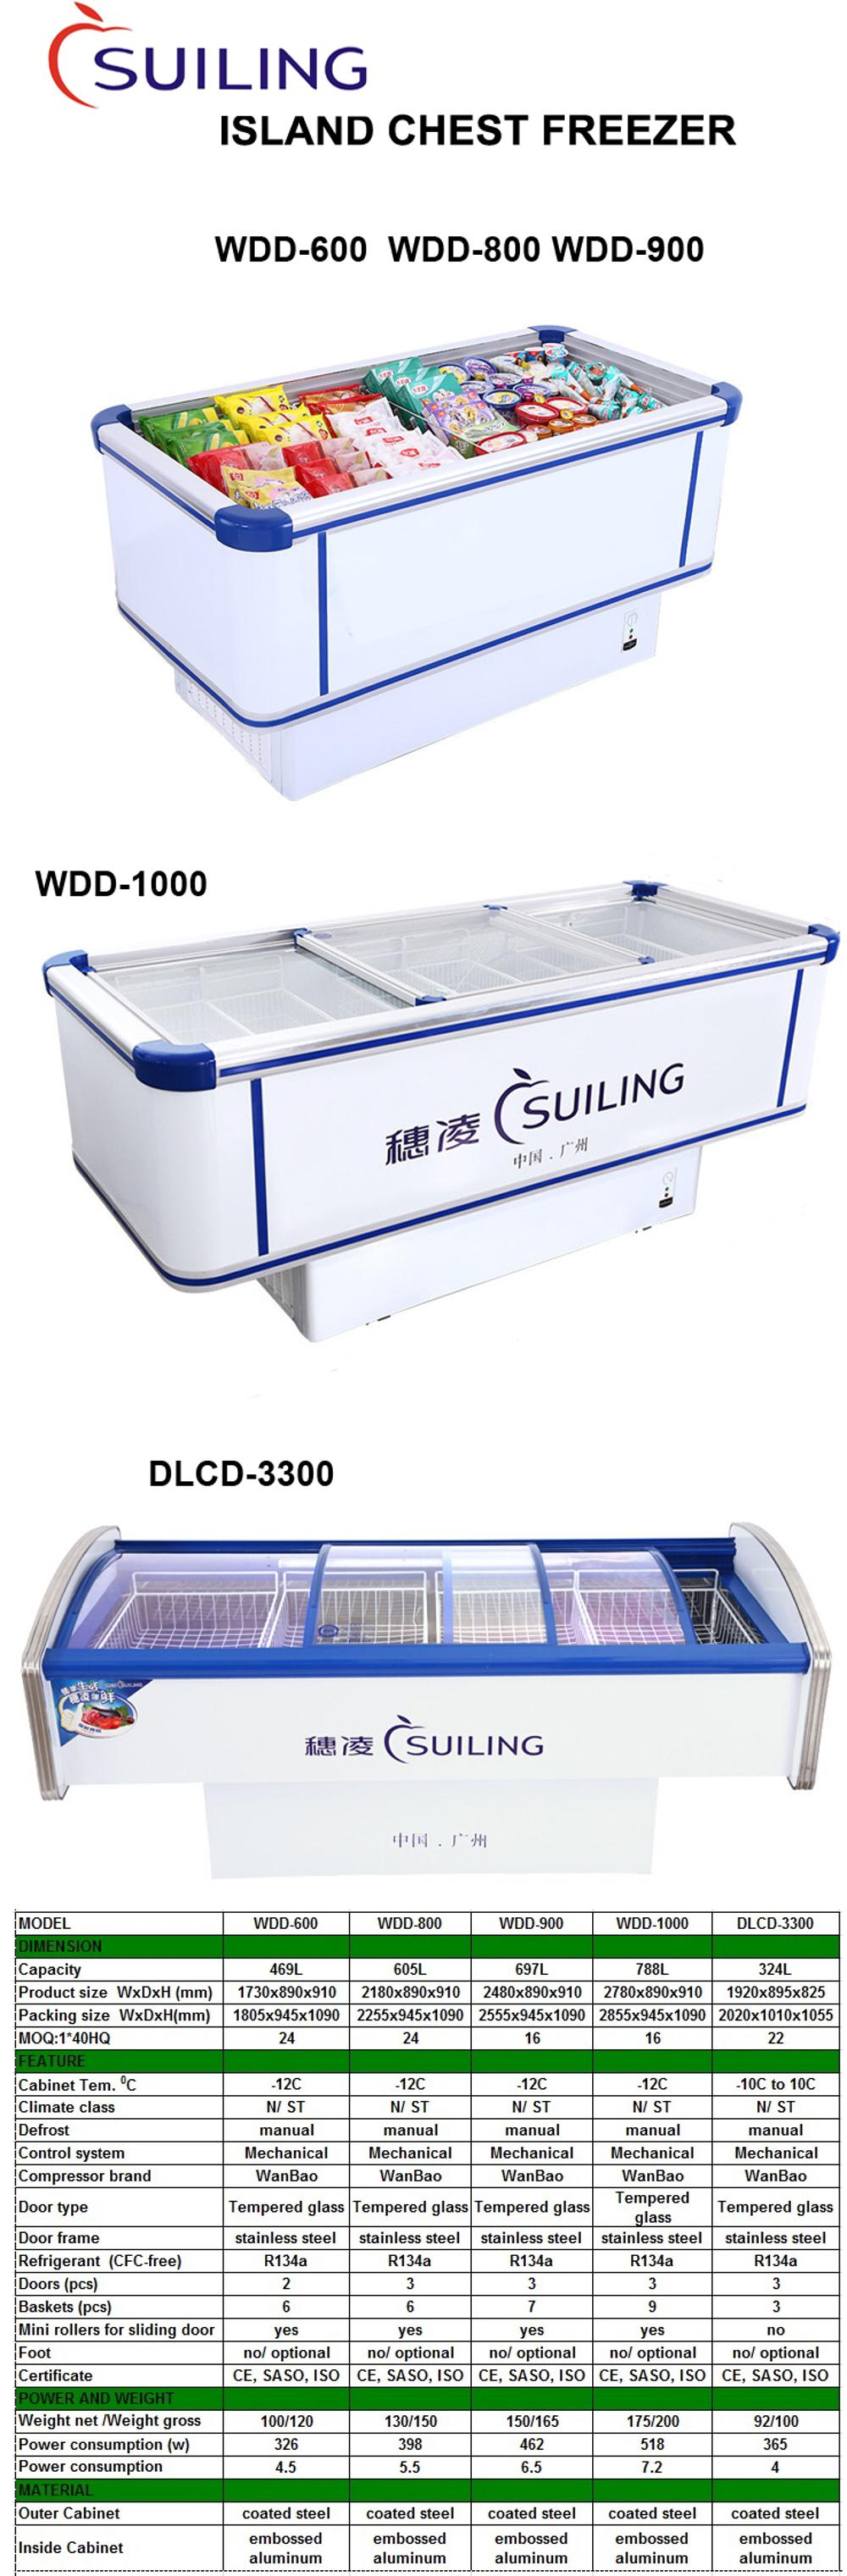 Suiling 469l Glass Top Supermarket Island Chest Freezer Wdd 600 100 Box